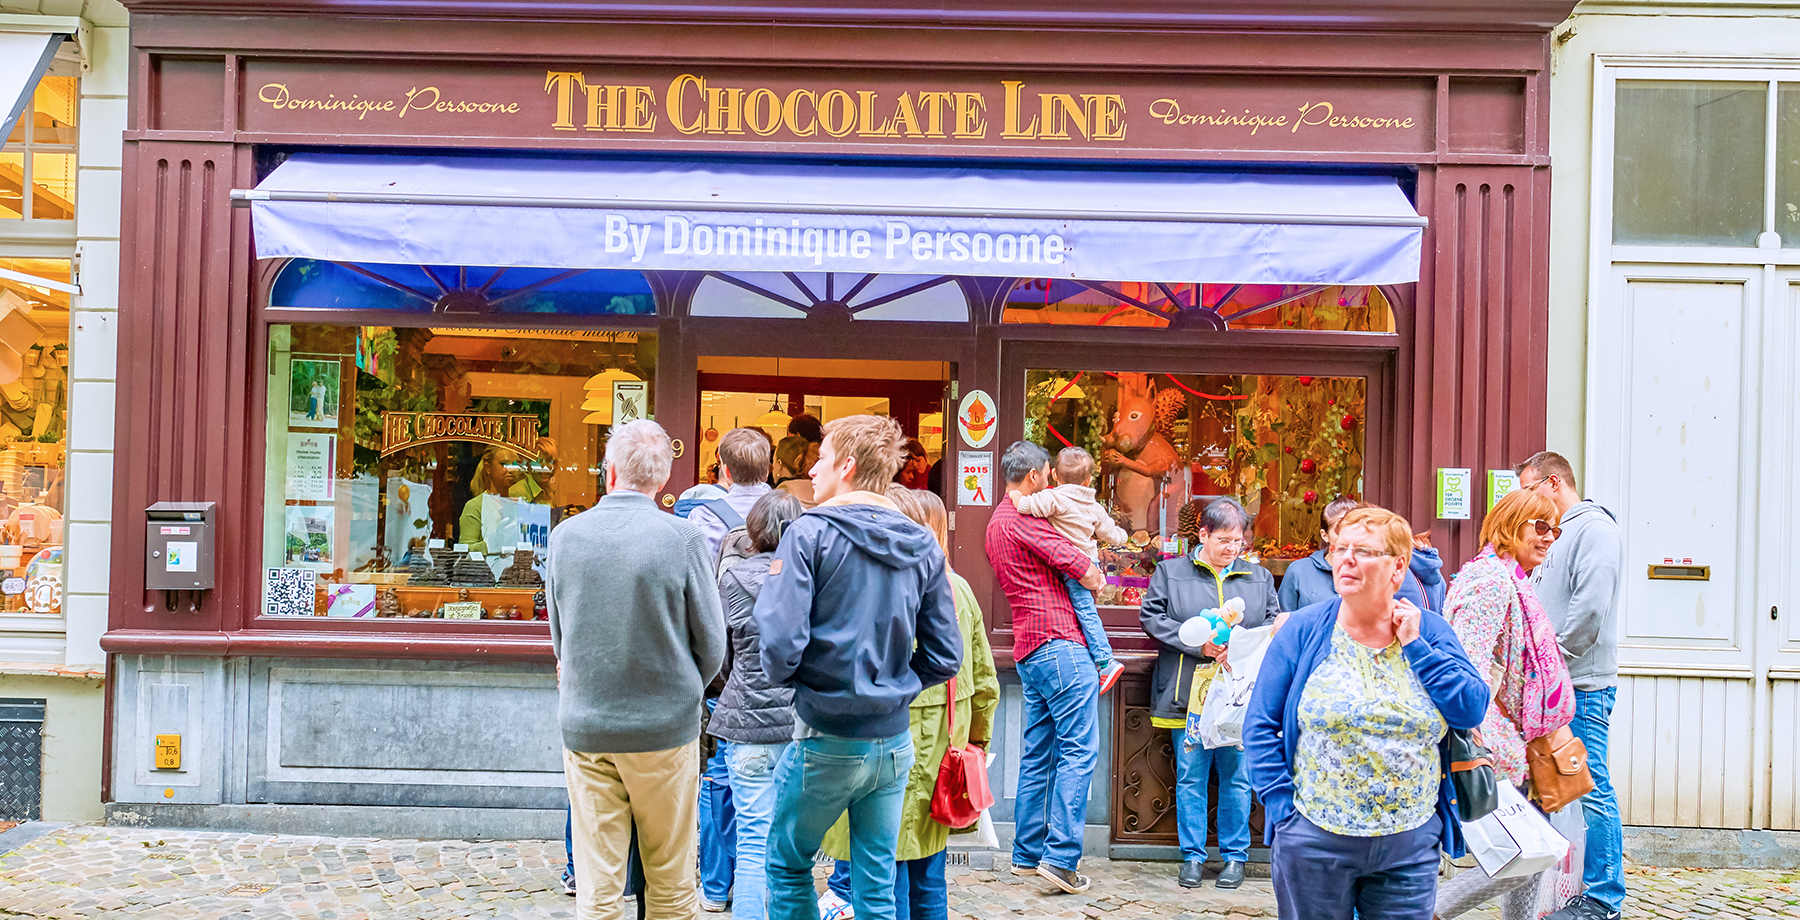 The Chocolate Line Cioccolato a Bruges